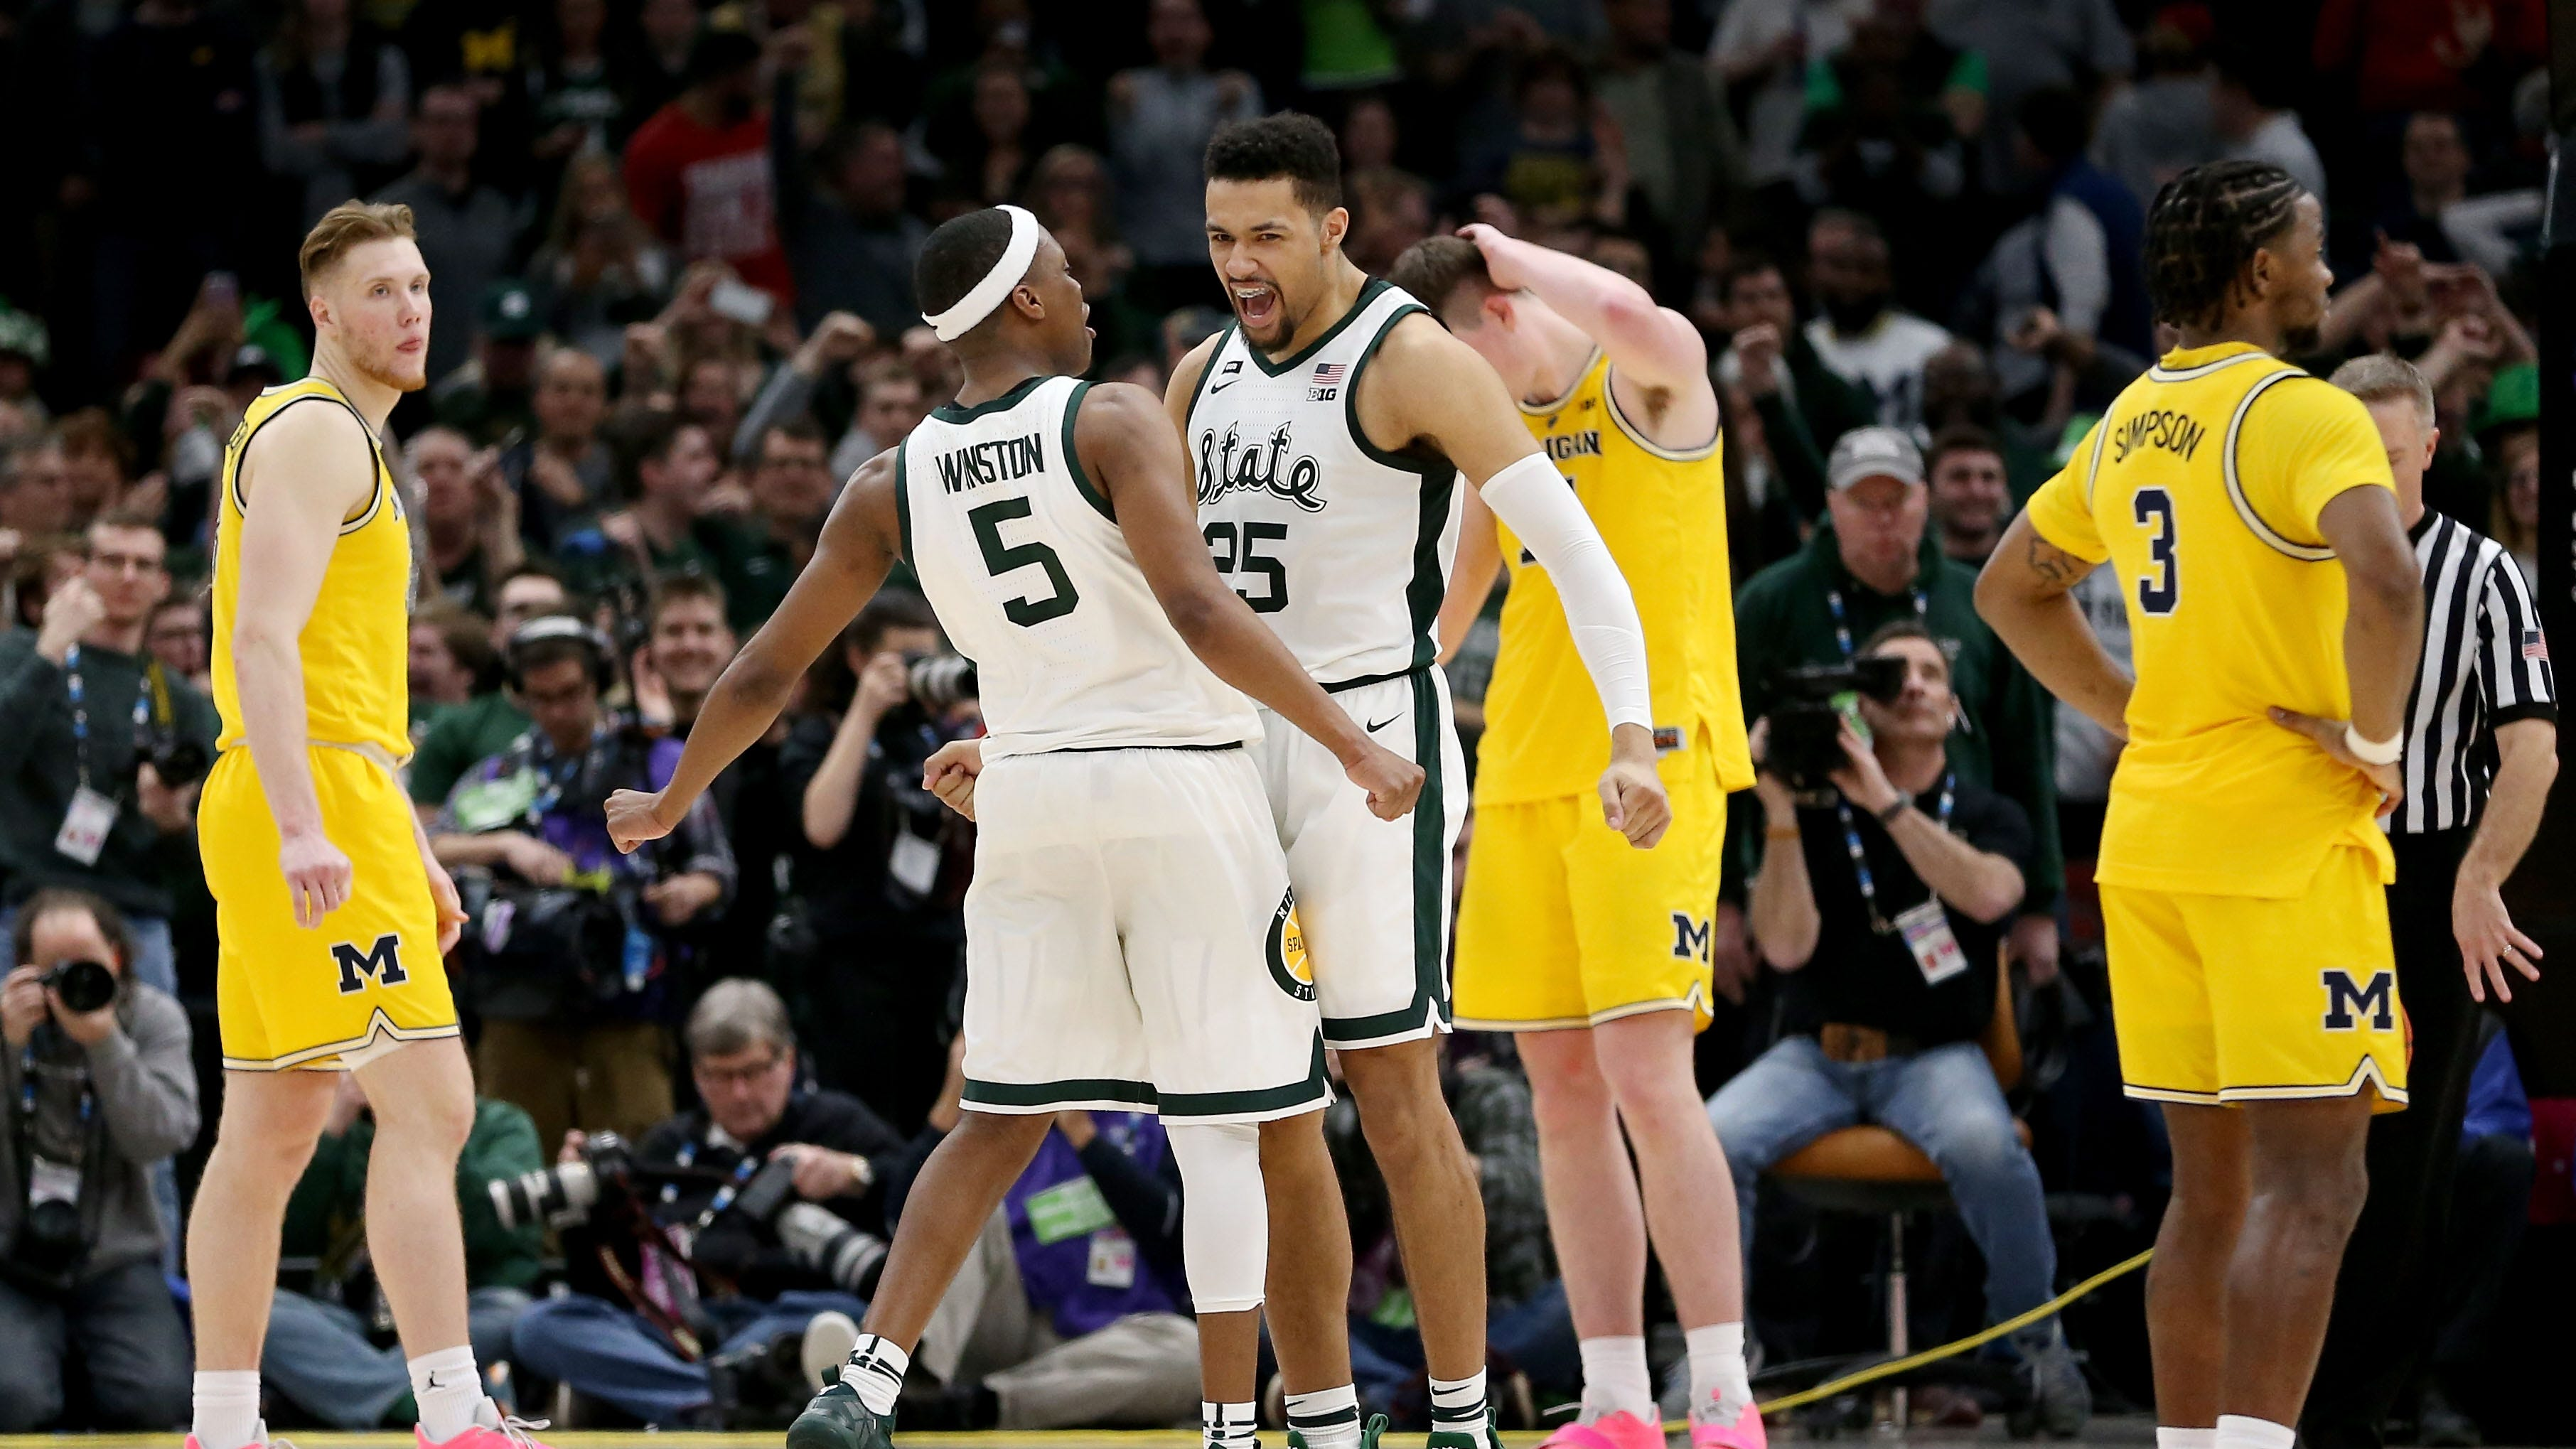 Michigan State's Cassius Winston and Kenny Goins celebrate beating Michigan in the Big Ten tournament final.